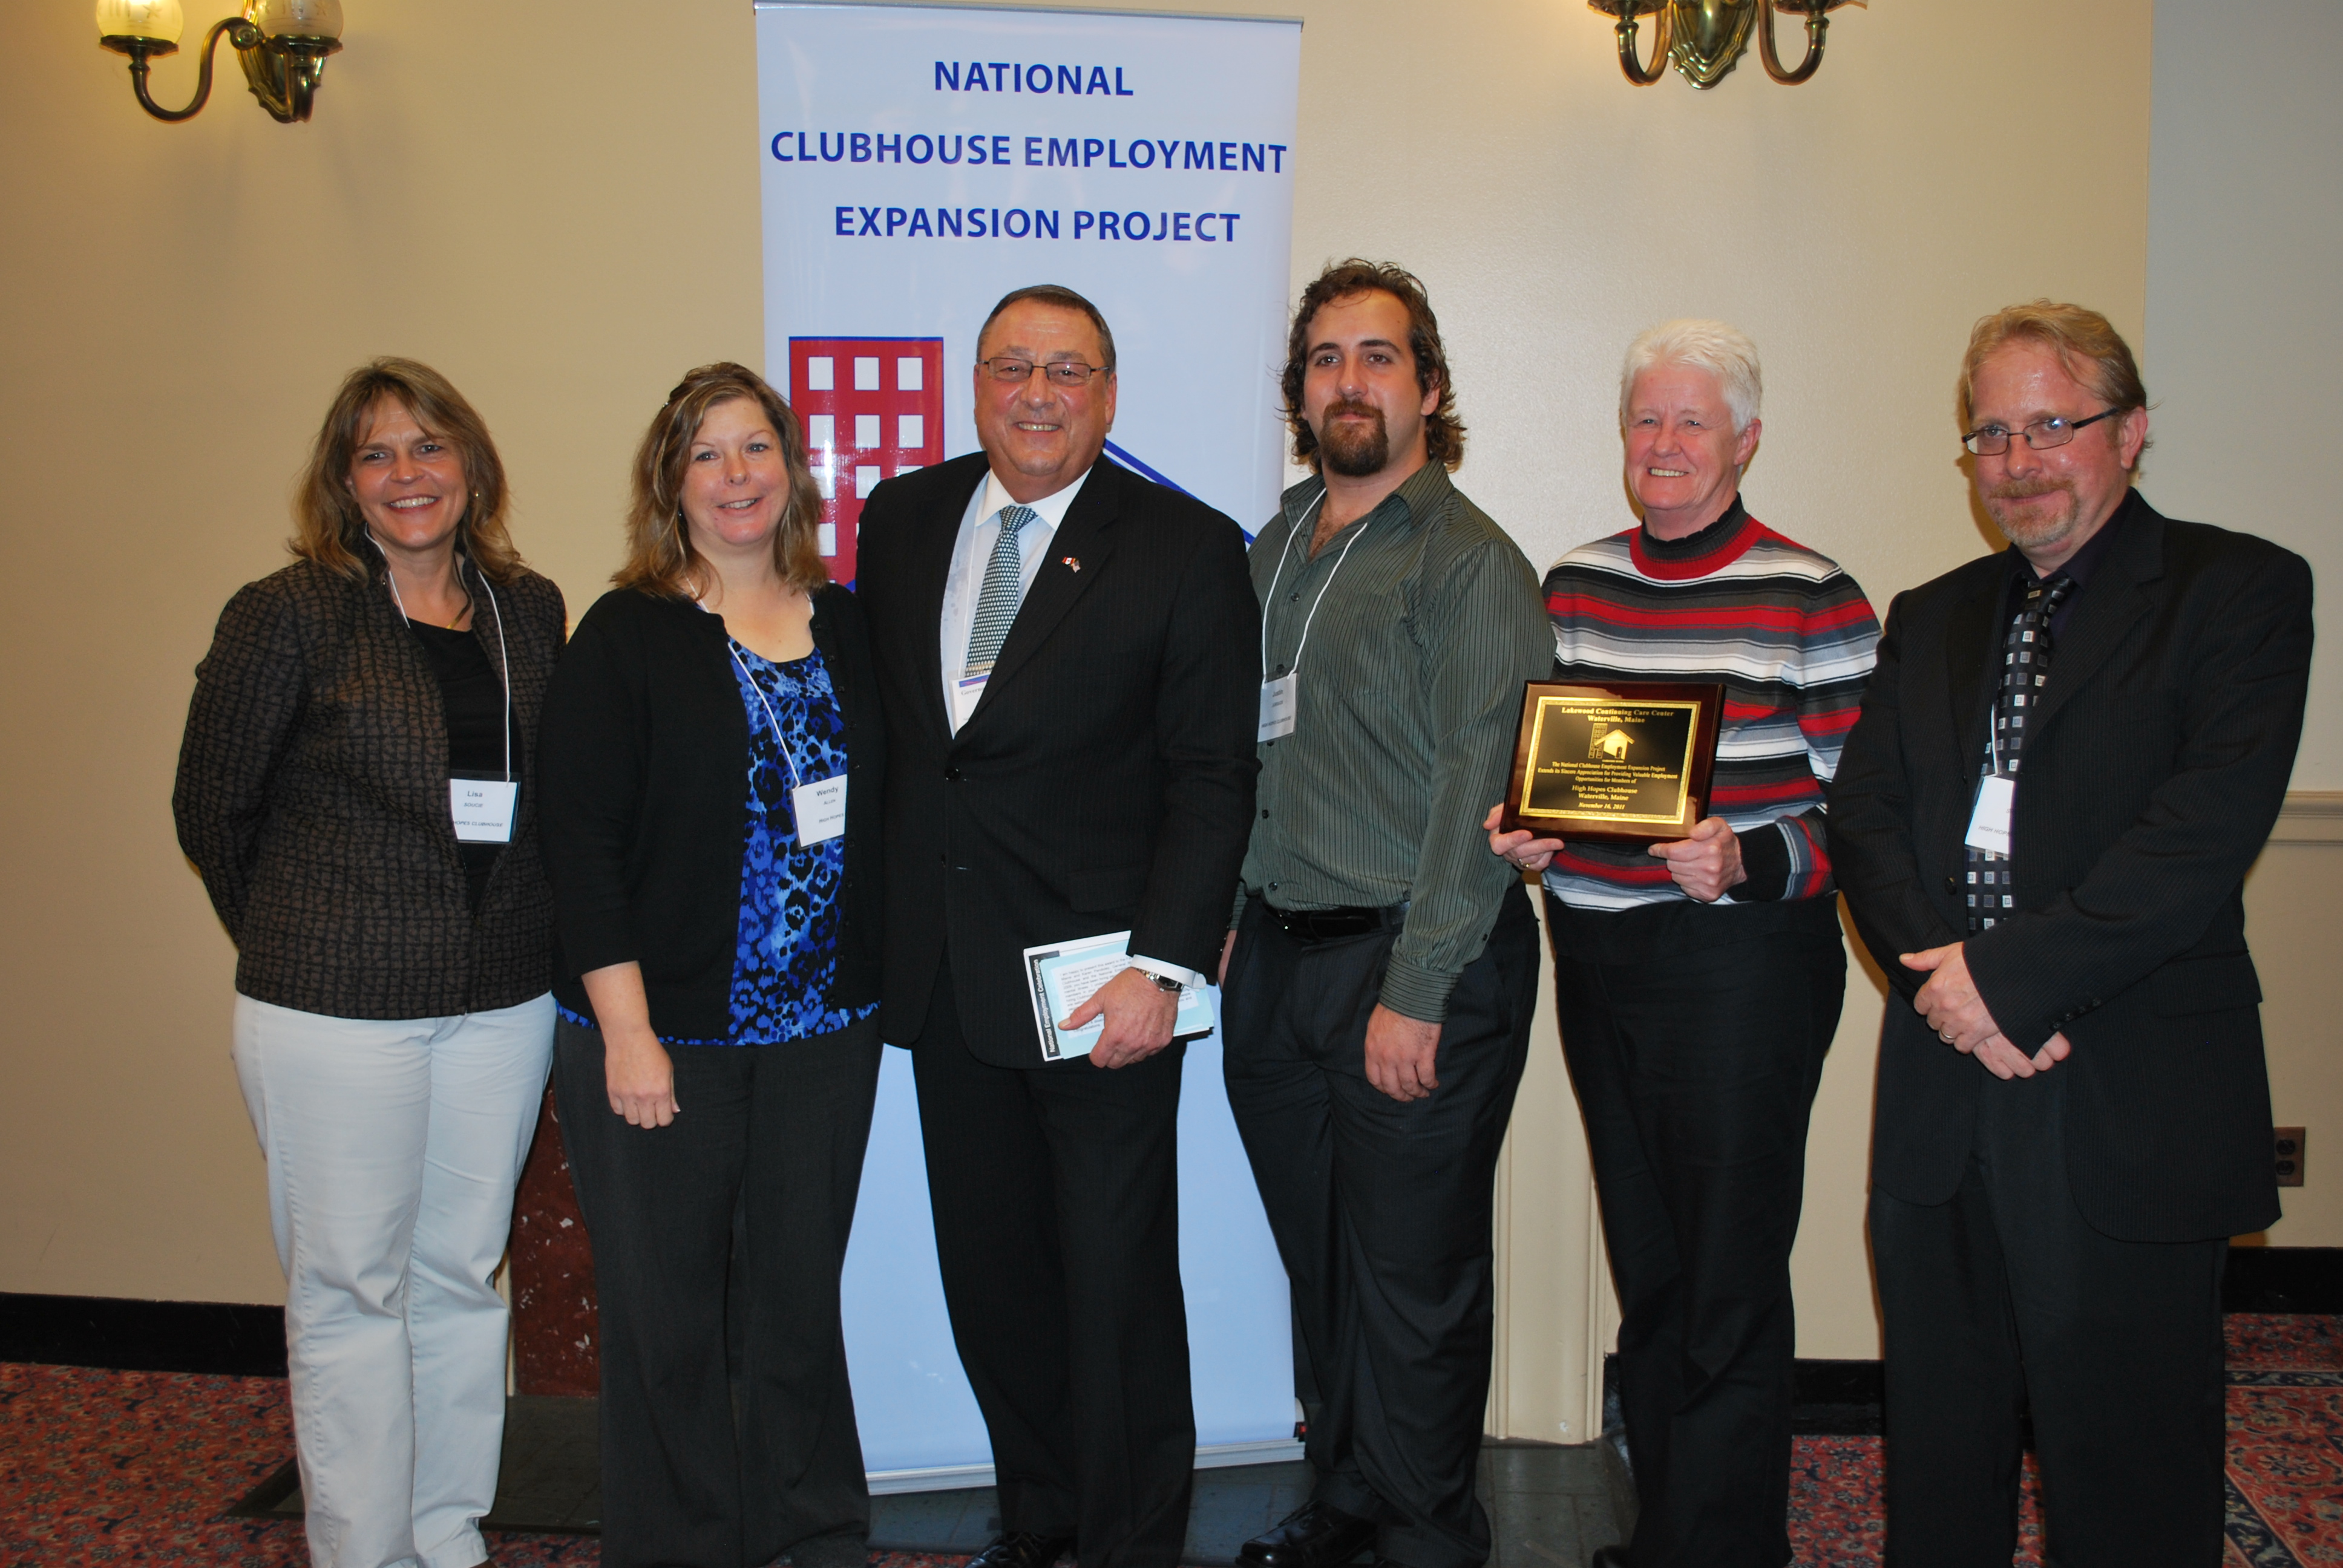 Governor LePage with High Hopes Clubhouse members and staff.